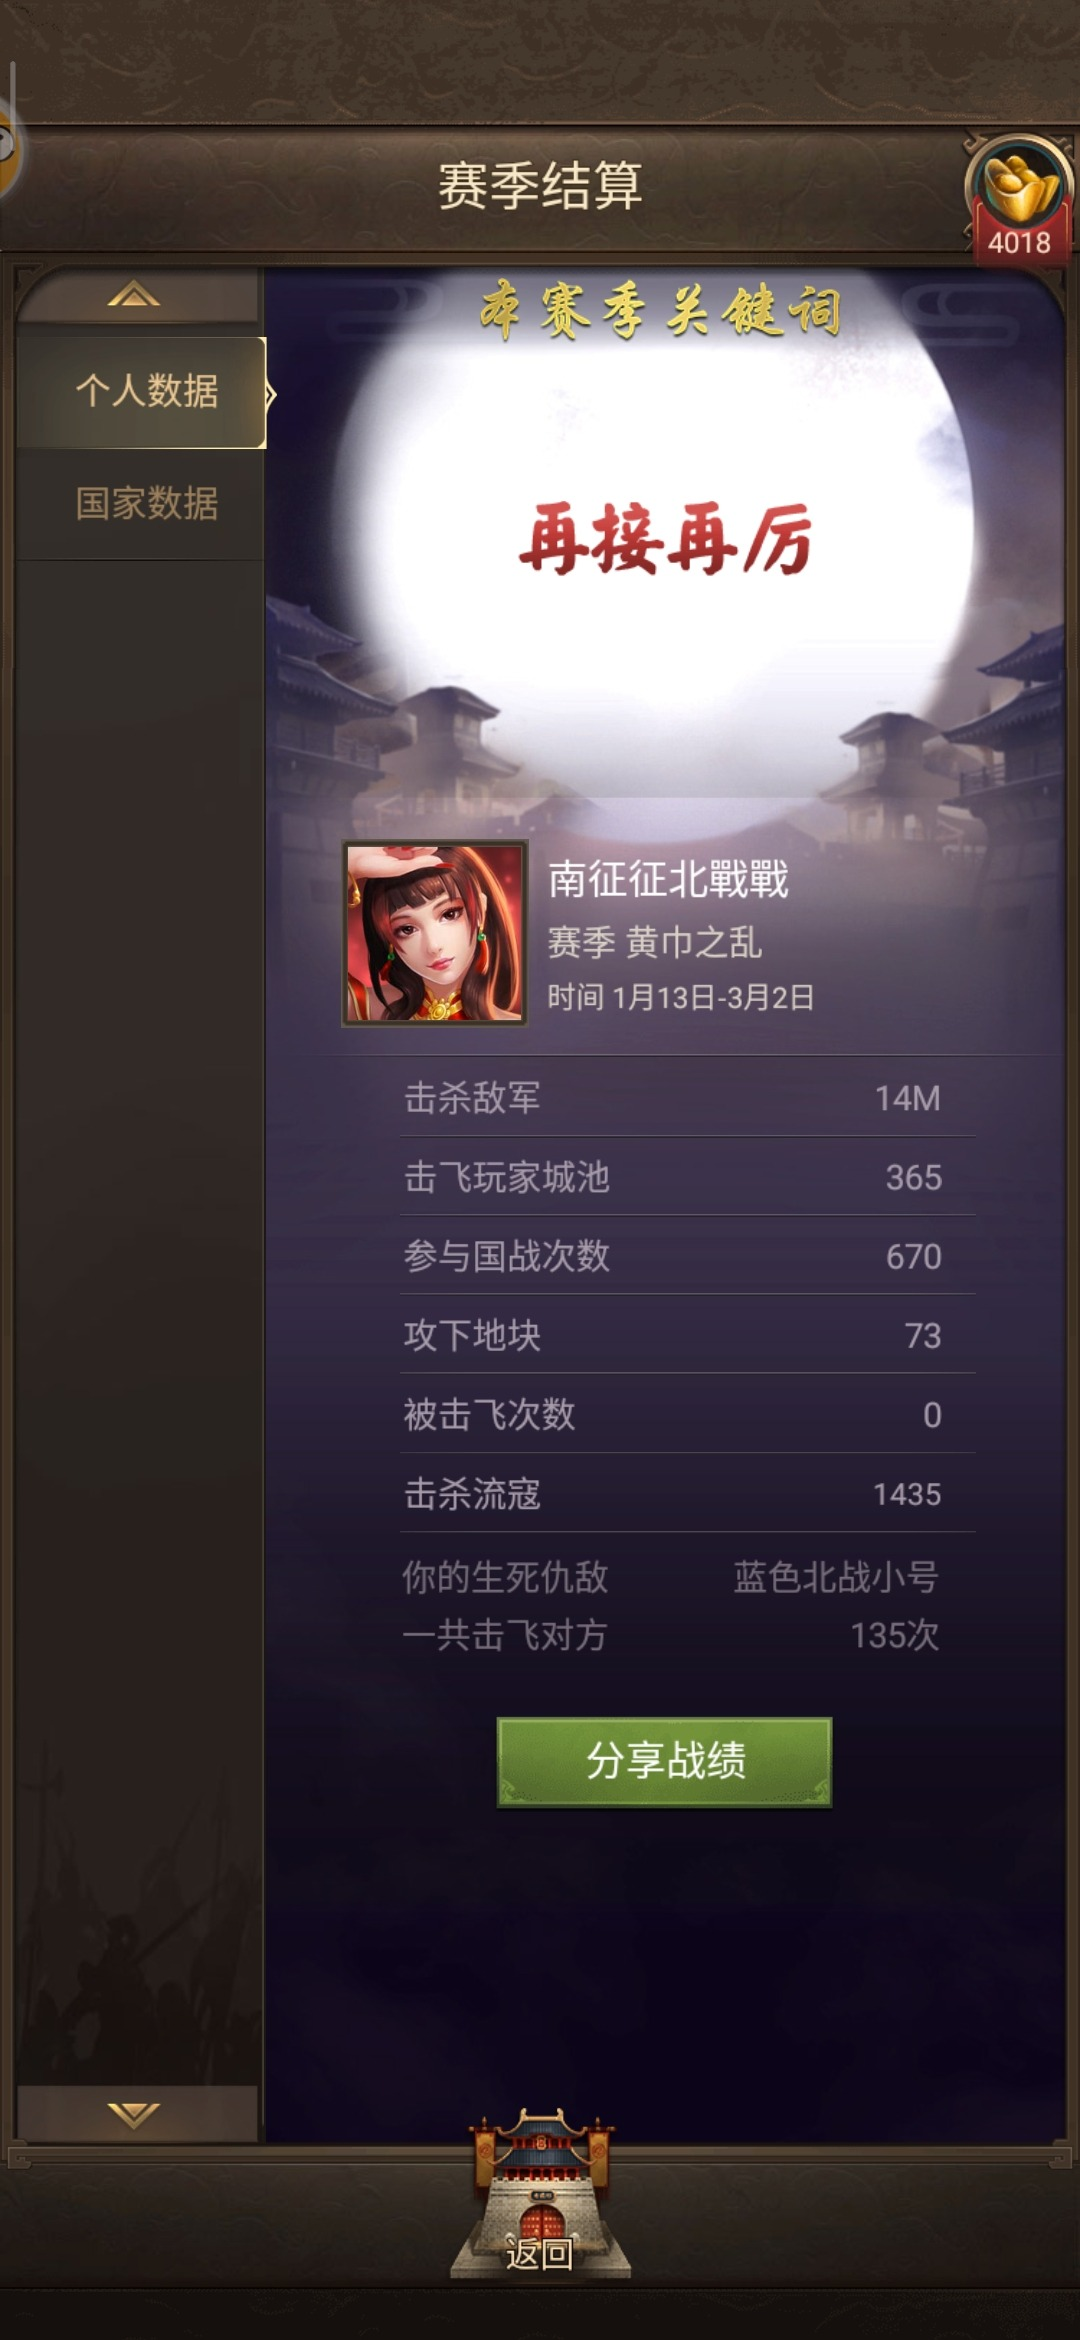 Screenshot_2020-03-02-16-05-15-268_com.juedigame.sgdjl.shoumeng.jpg